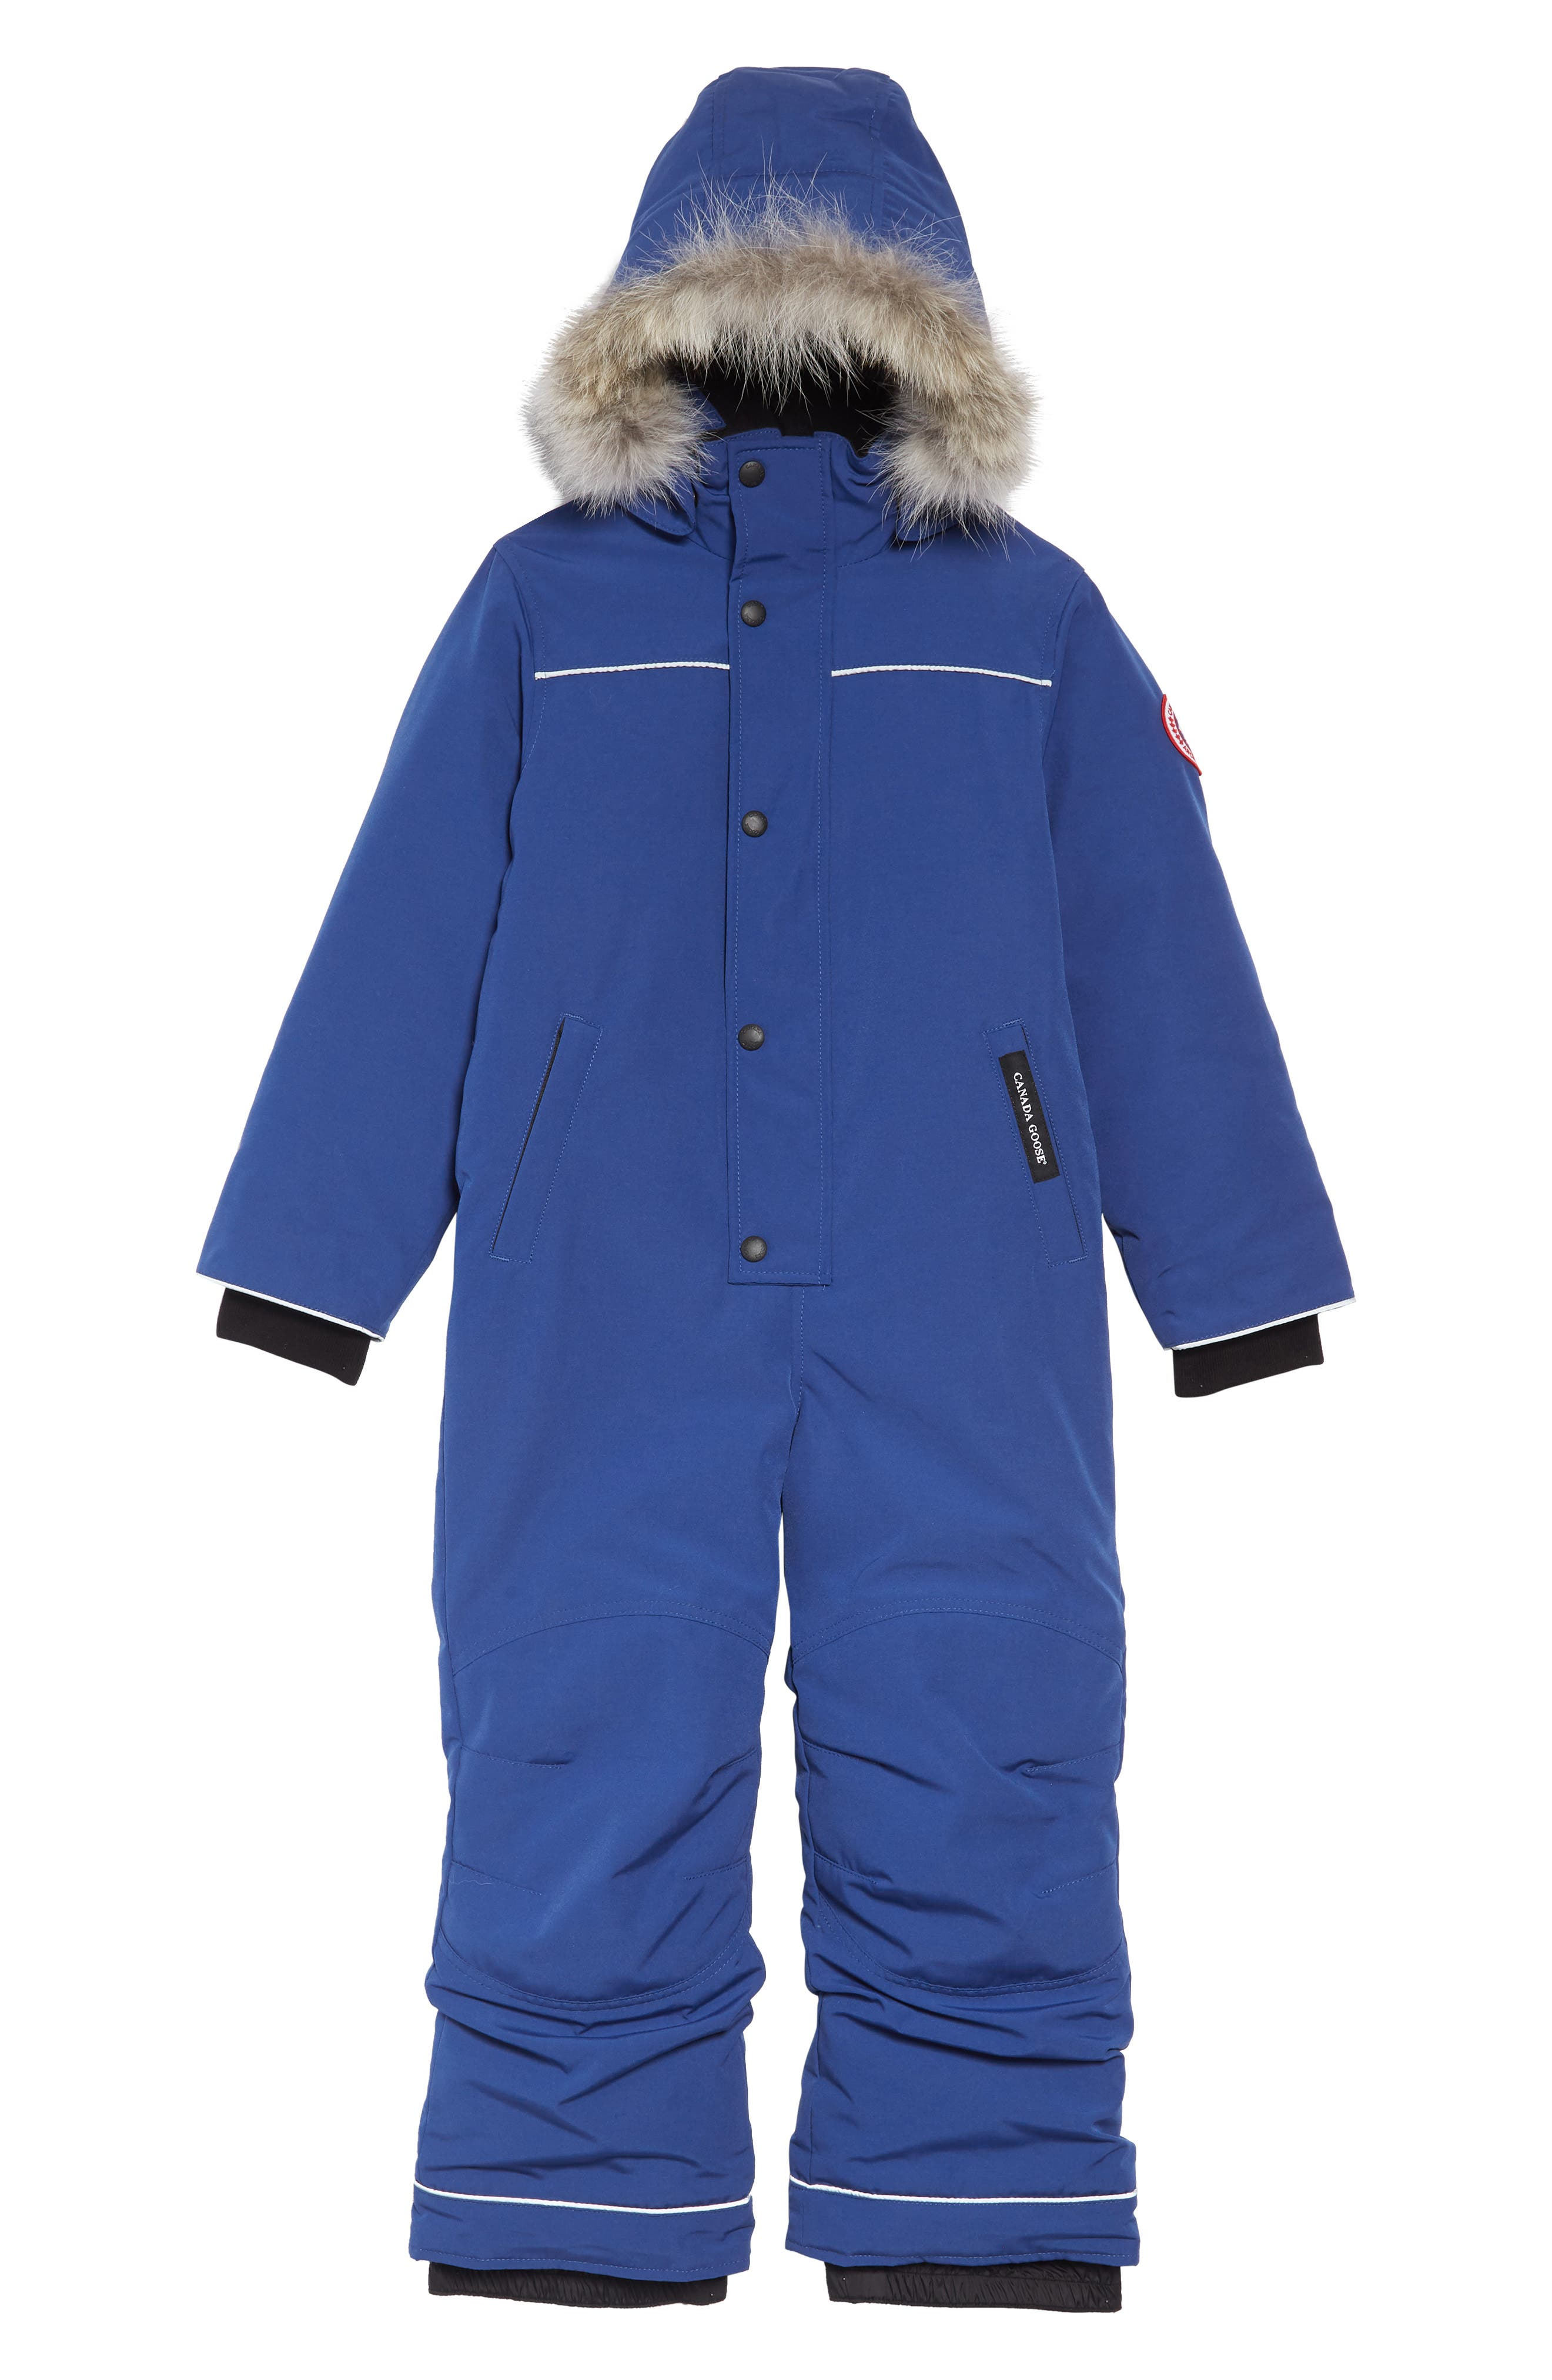 Toddler Canada Goose Baby Grizzly Snowsuit With Genuine Coyote Fur Trim Size 23T  Blue